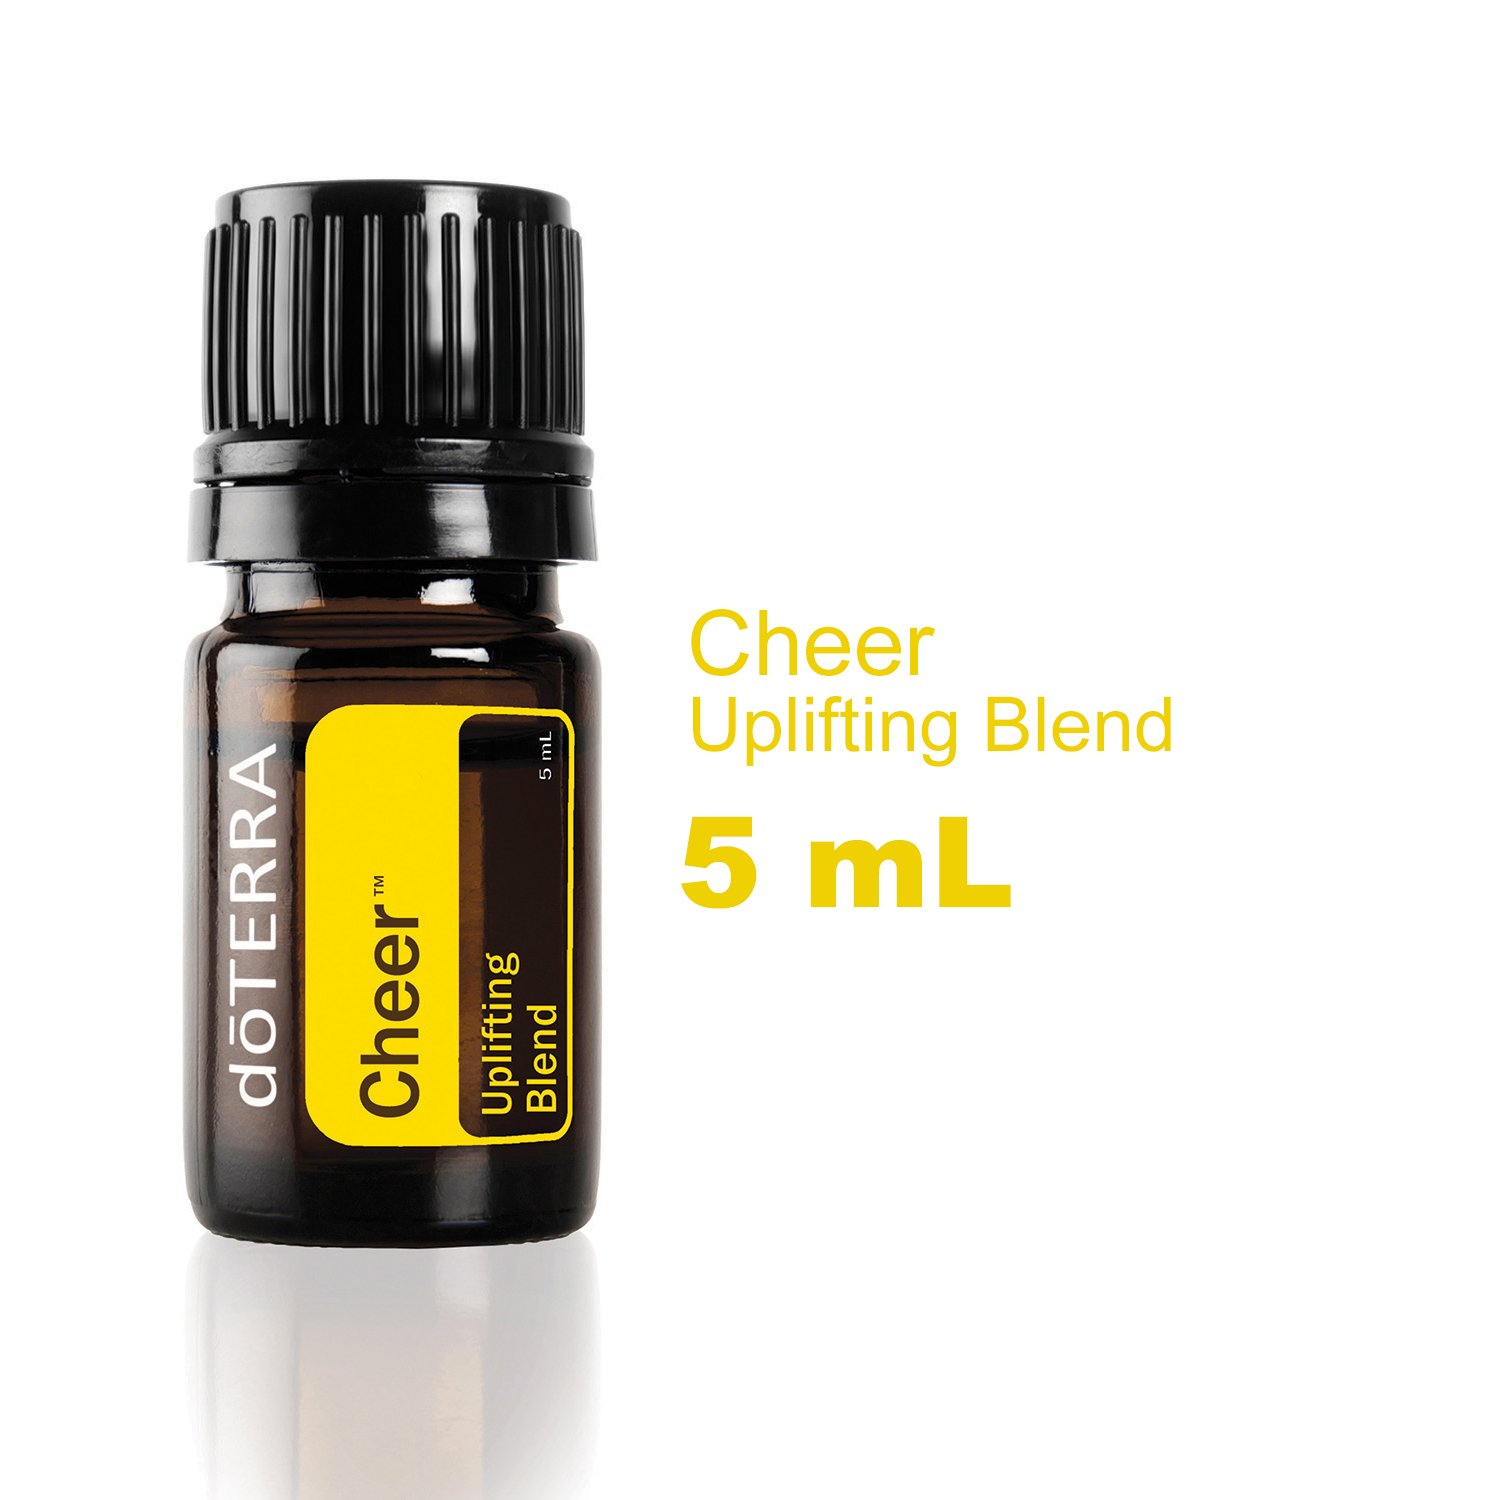 Doterra Christmas Gift Ideas.Doterra Cheer Essential Oil Uplifting Blend Optimistic Aroma Promotes Feelings Of Cheerfulness And Happiness Counteracts Negative Emotions For